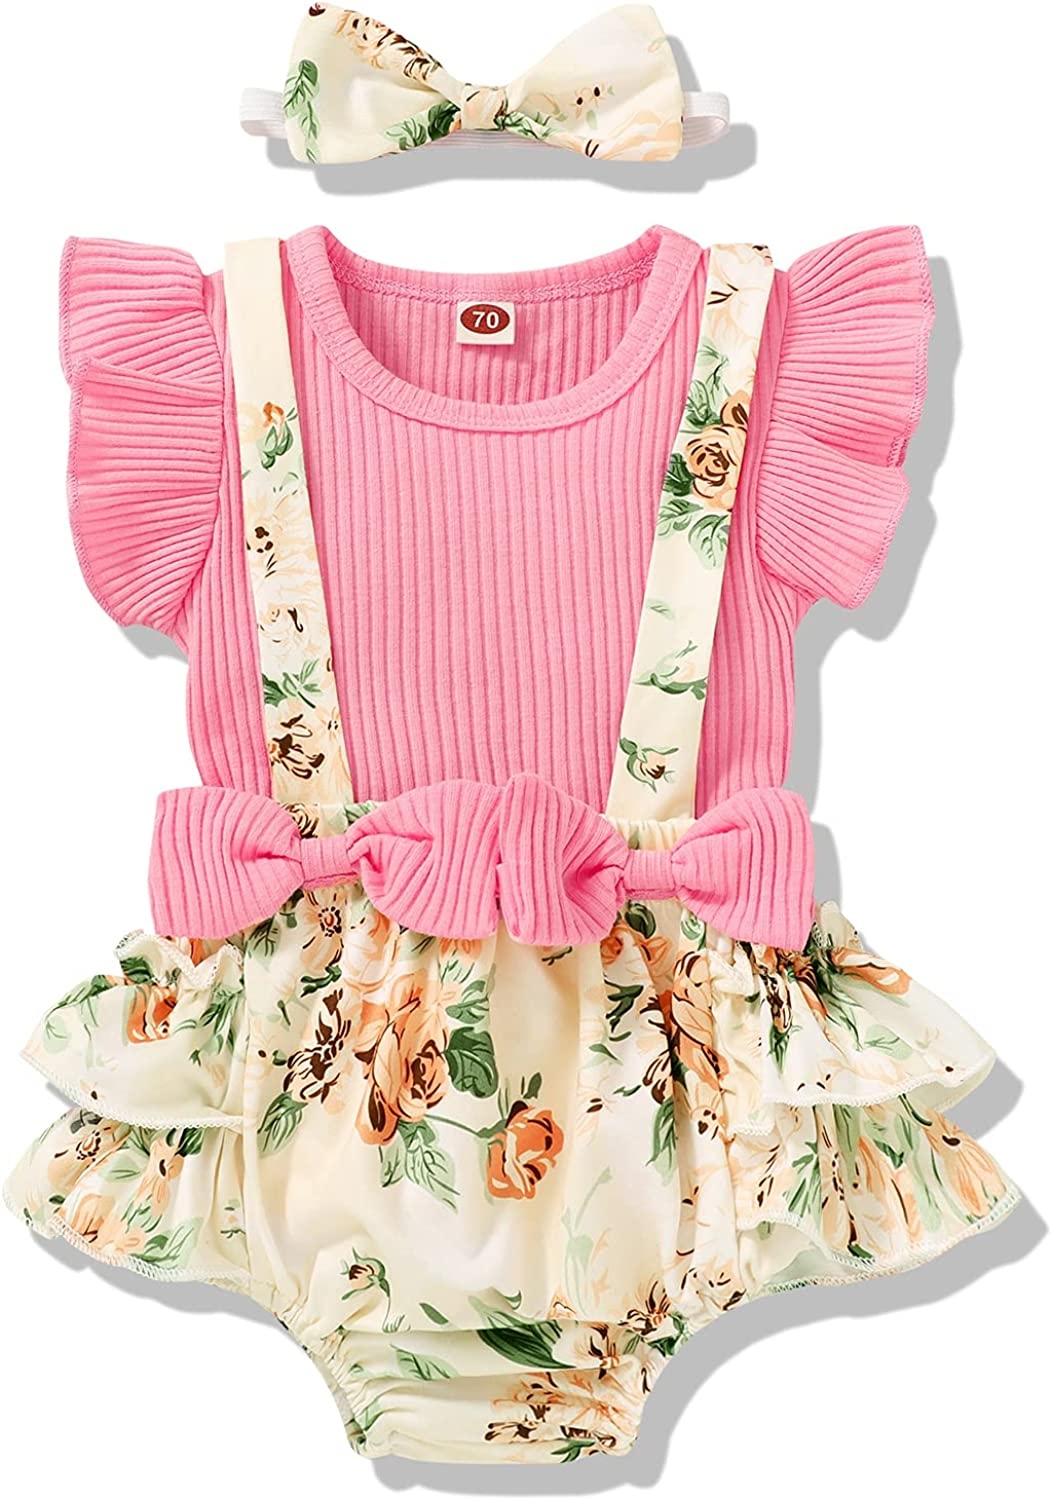 Newborn Infant Baby Girl Summer Clothes Floral Outfits Ruffle Sleeve T-Shirt Tops Suspender Shorts with Headband